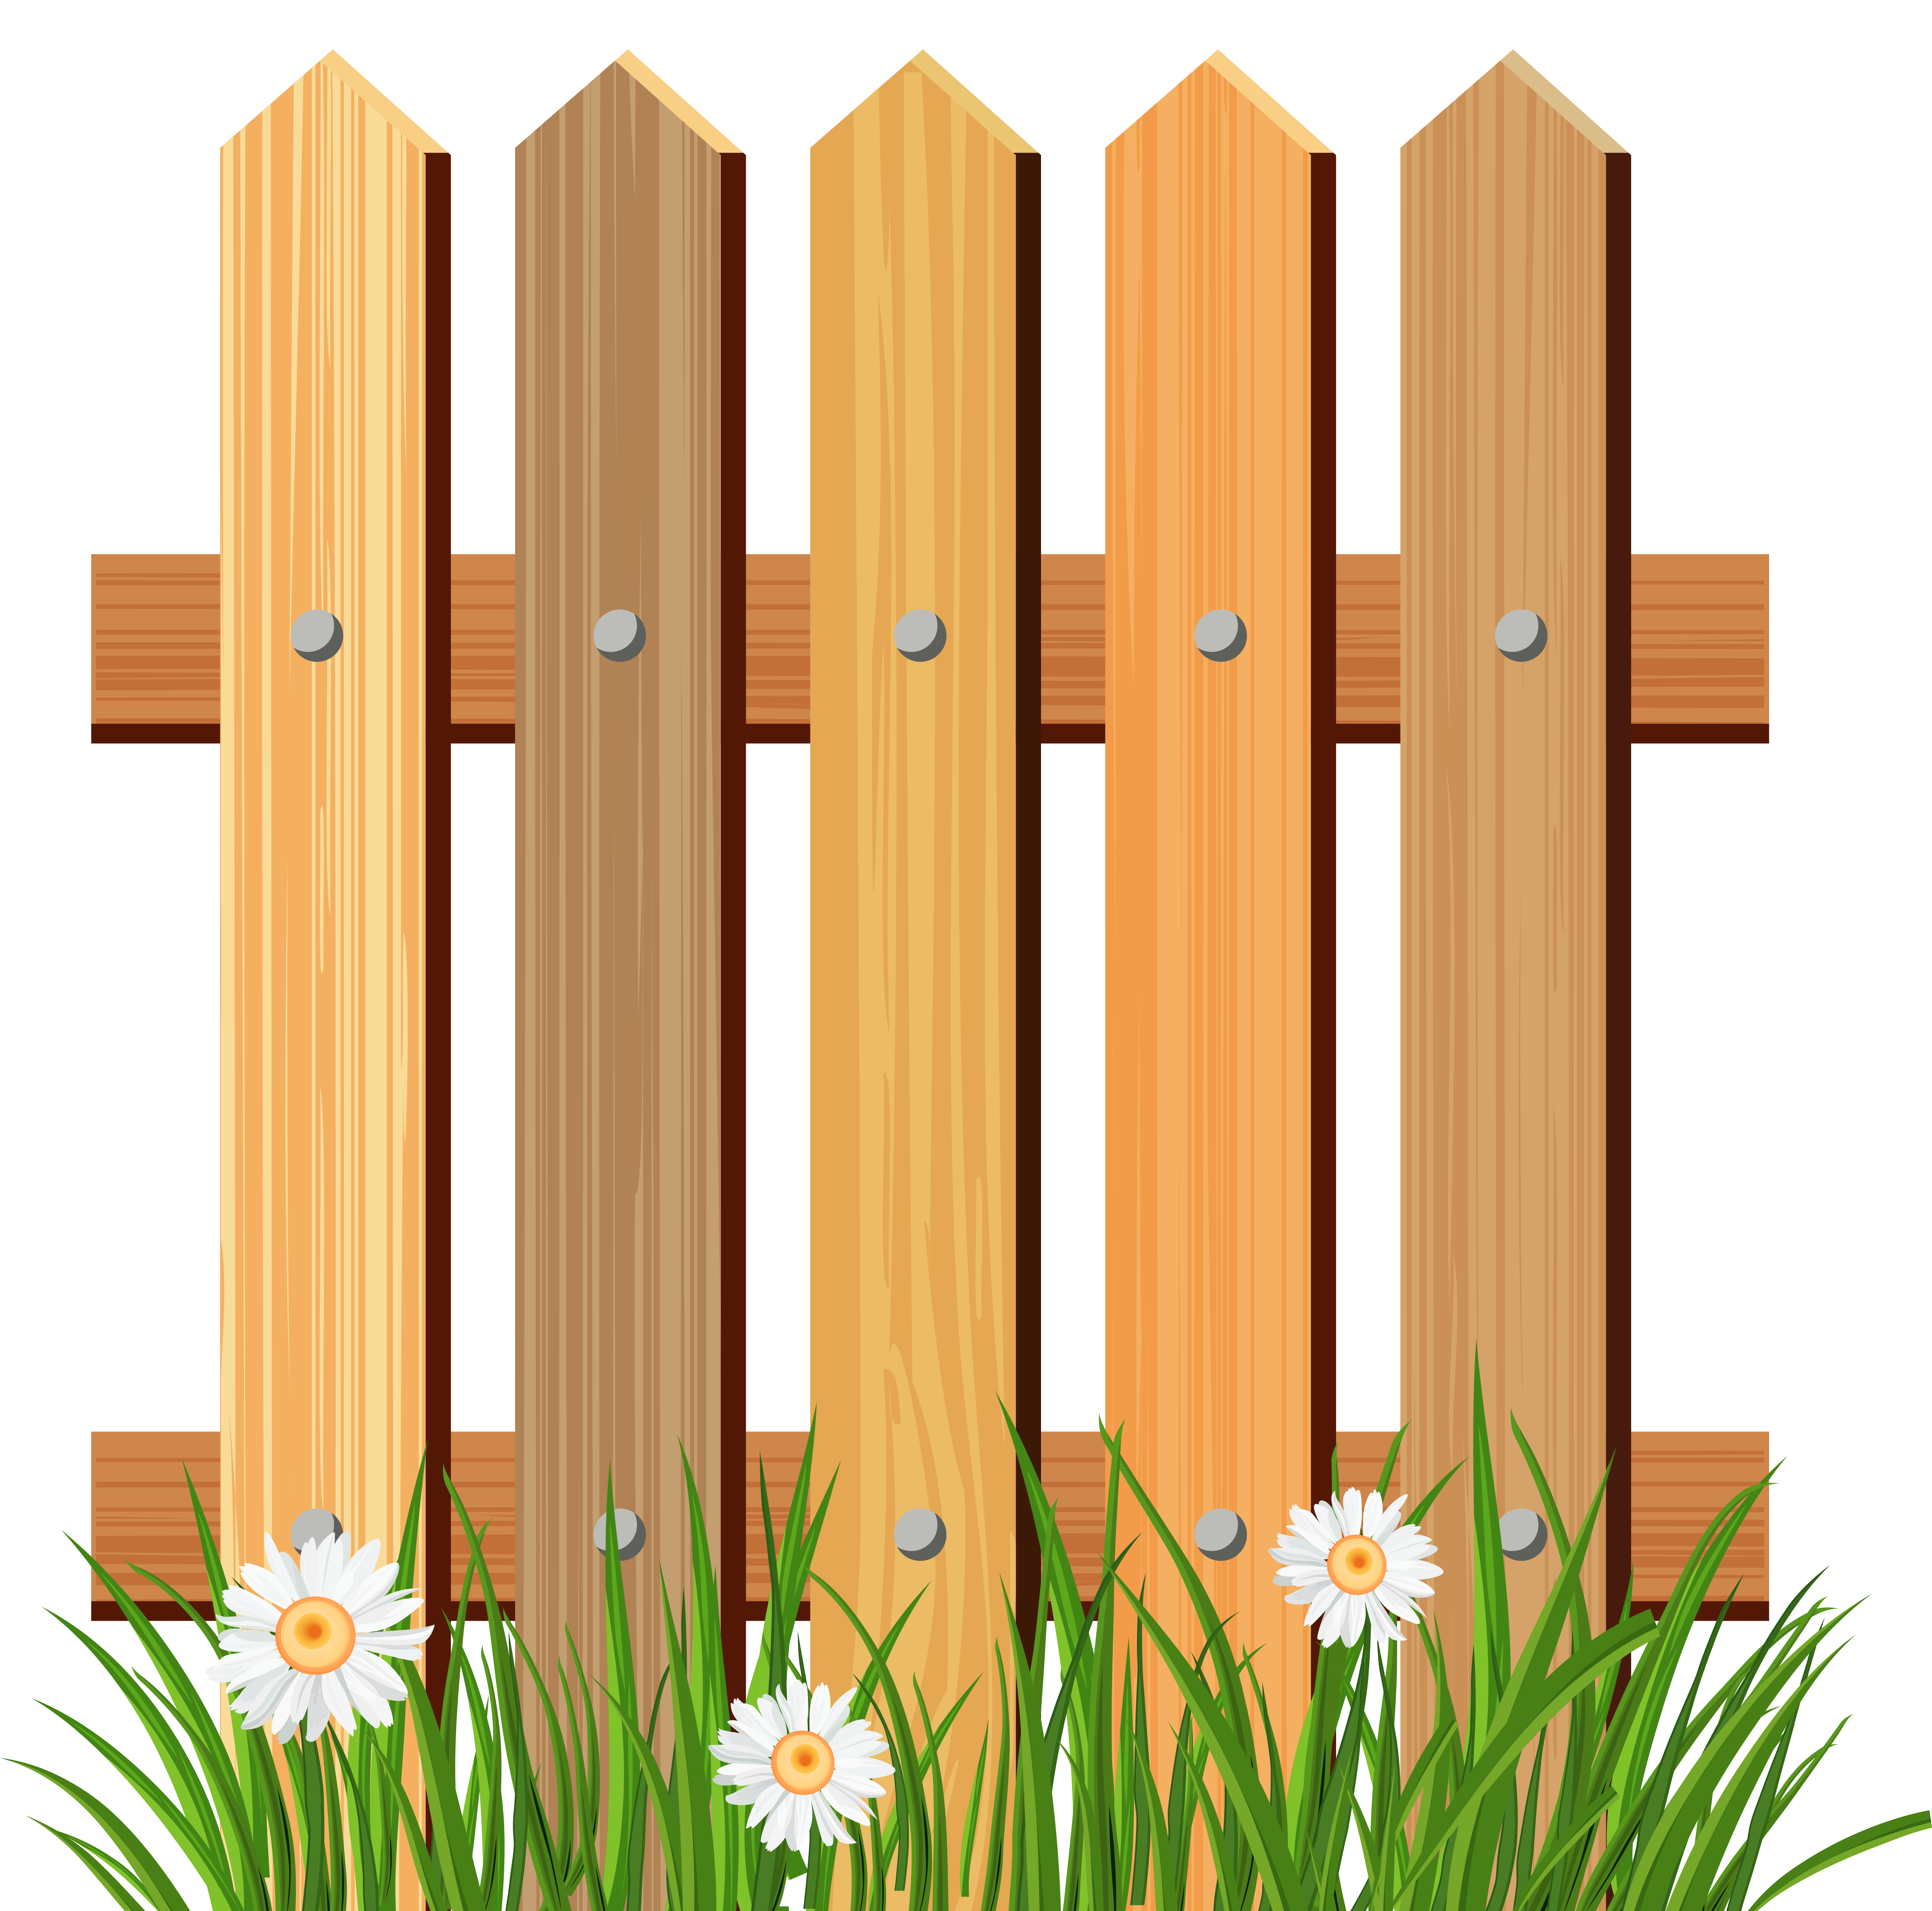 Clipart of fence jpg free Free Fence Cliparts, Download Free Clip Art, Free Clip Art on ... jpg free